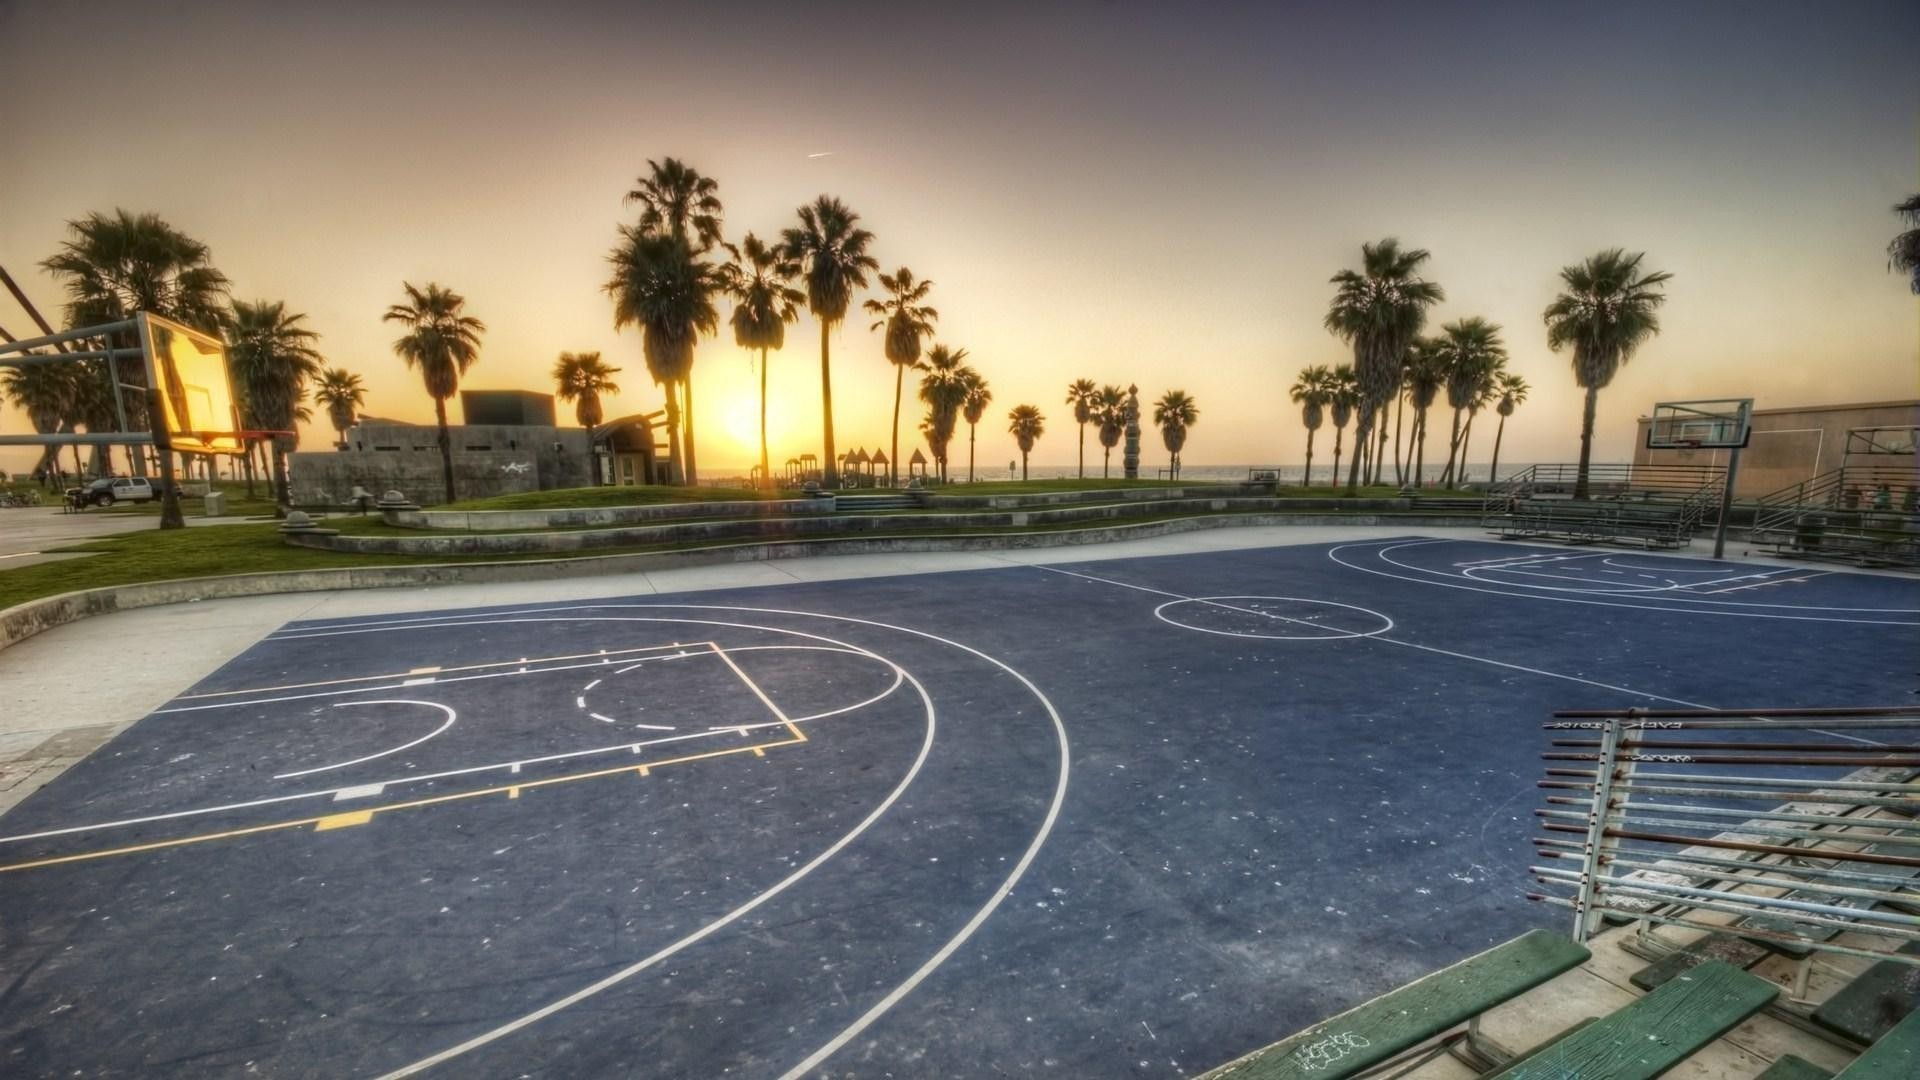 Basketball Court Wallpapers (60+ Images